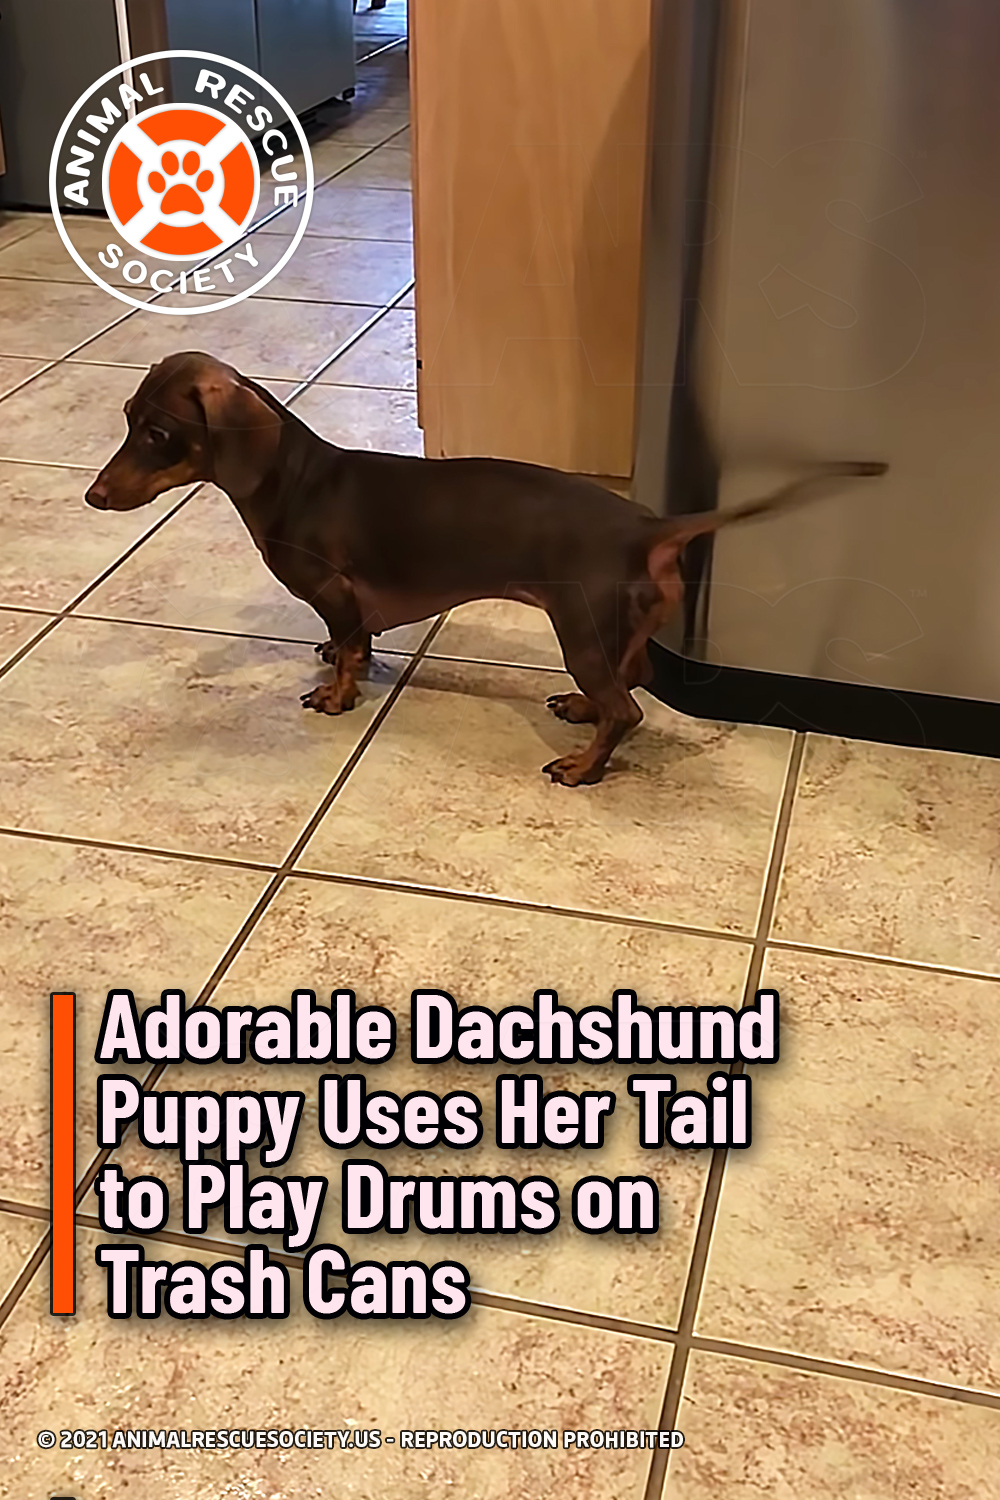 Adorable Dachshund Puppy Uses Her Tail to Play Drums on Trash Cans